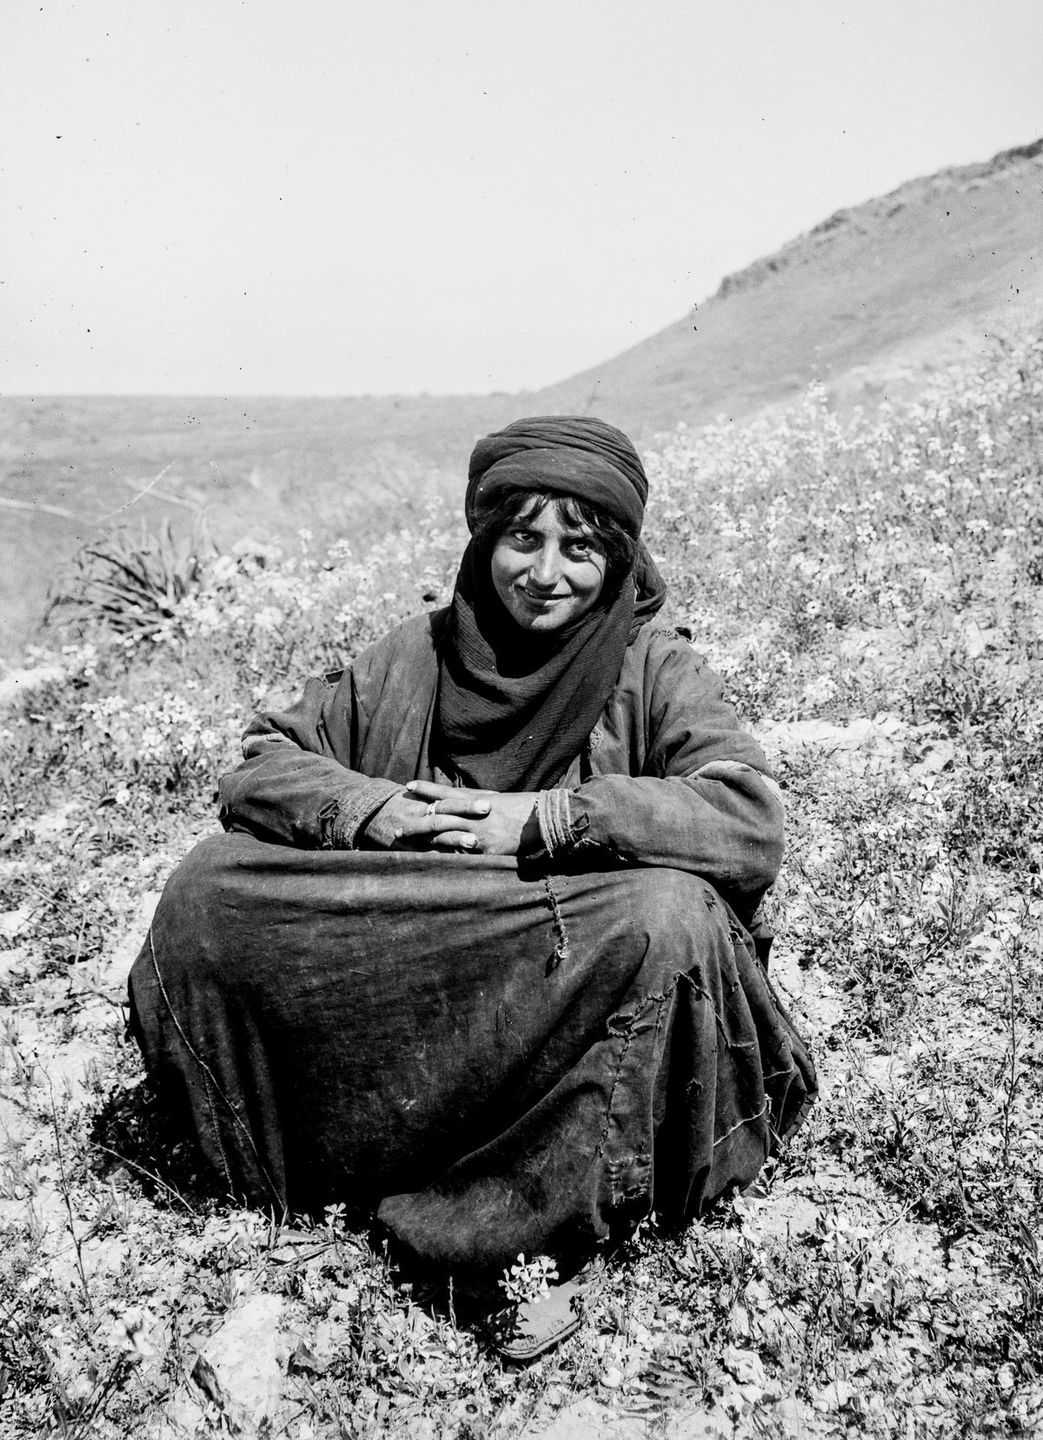 American Colony Photo Department, the Matson Photo Service, Bedouins 1898, Jérusalem, Palestine, Égypte